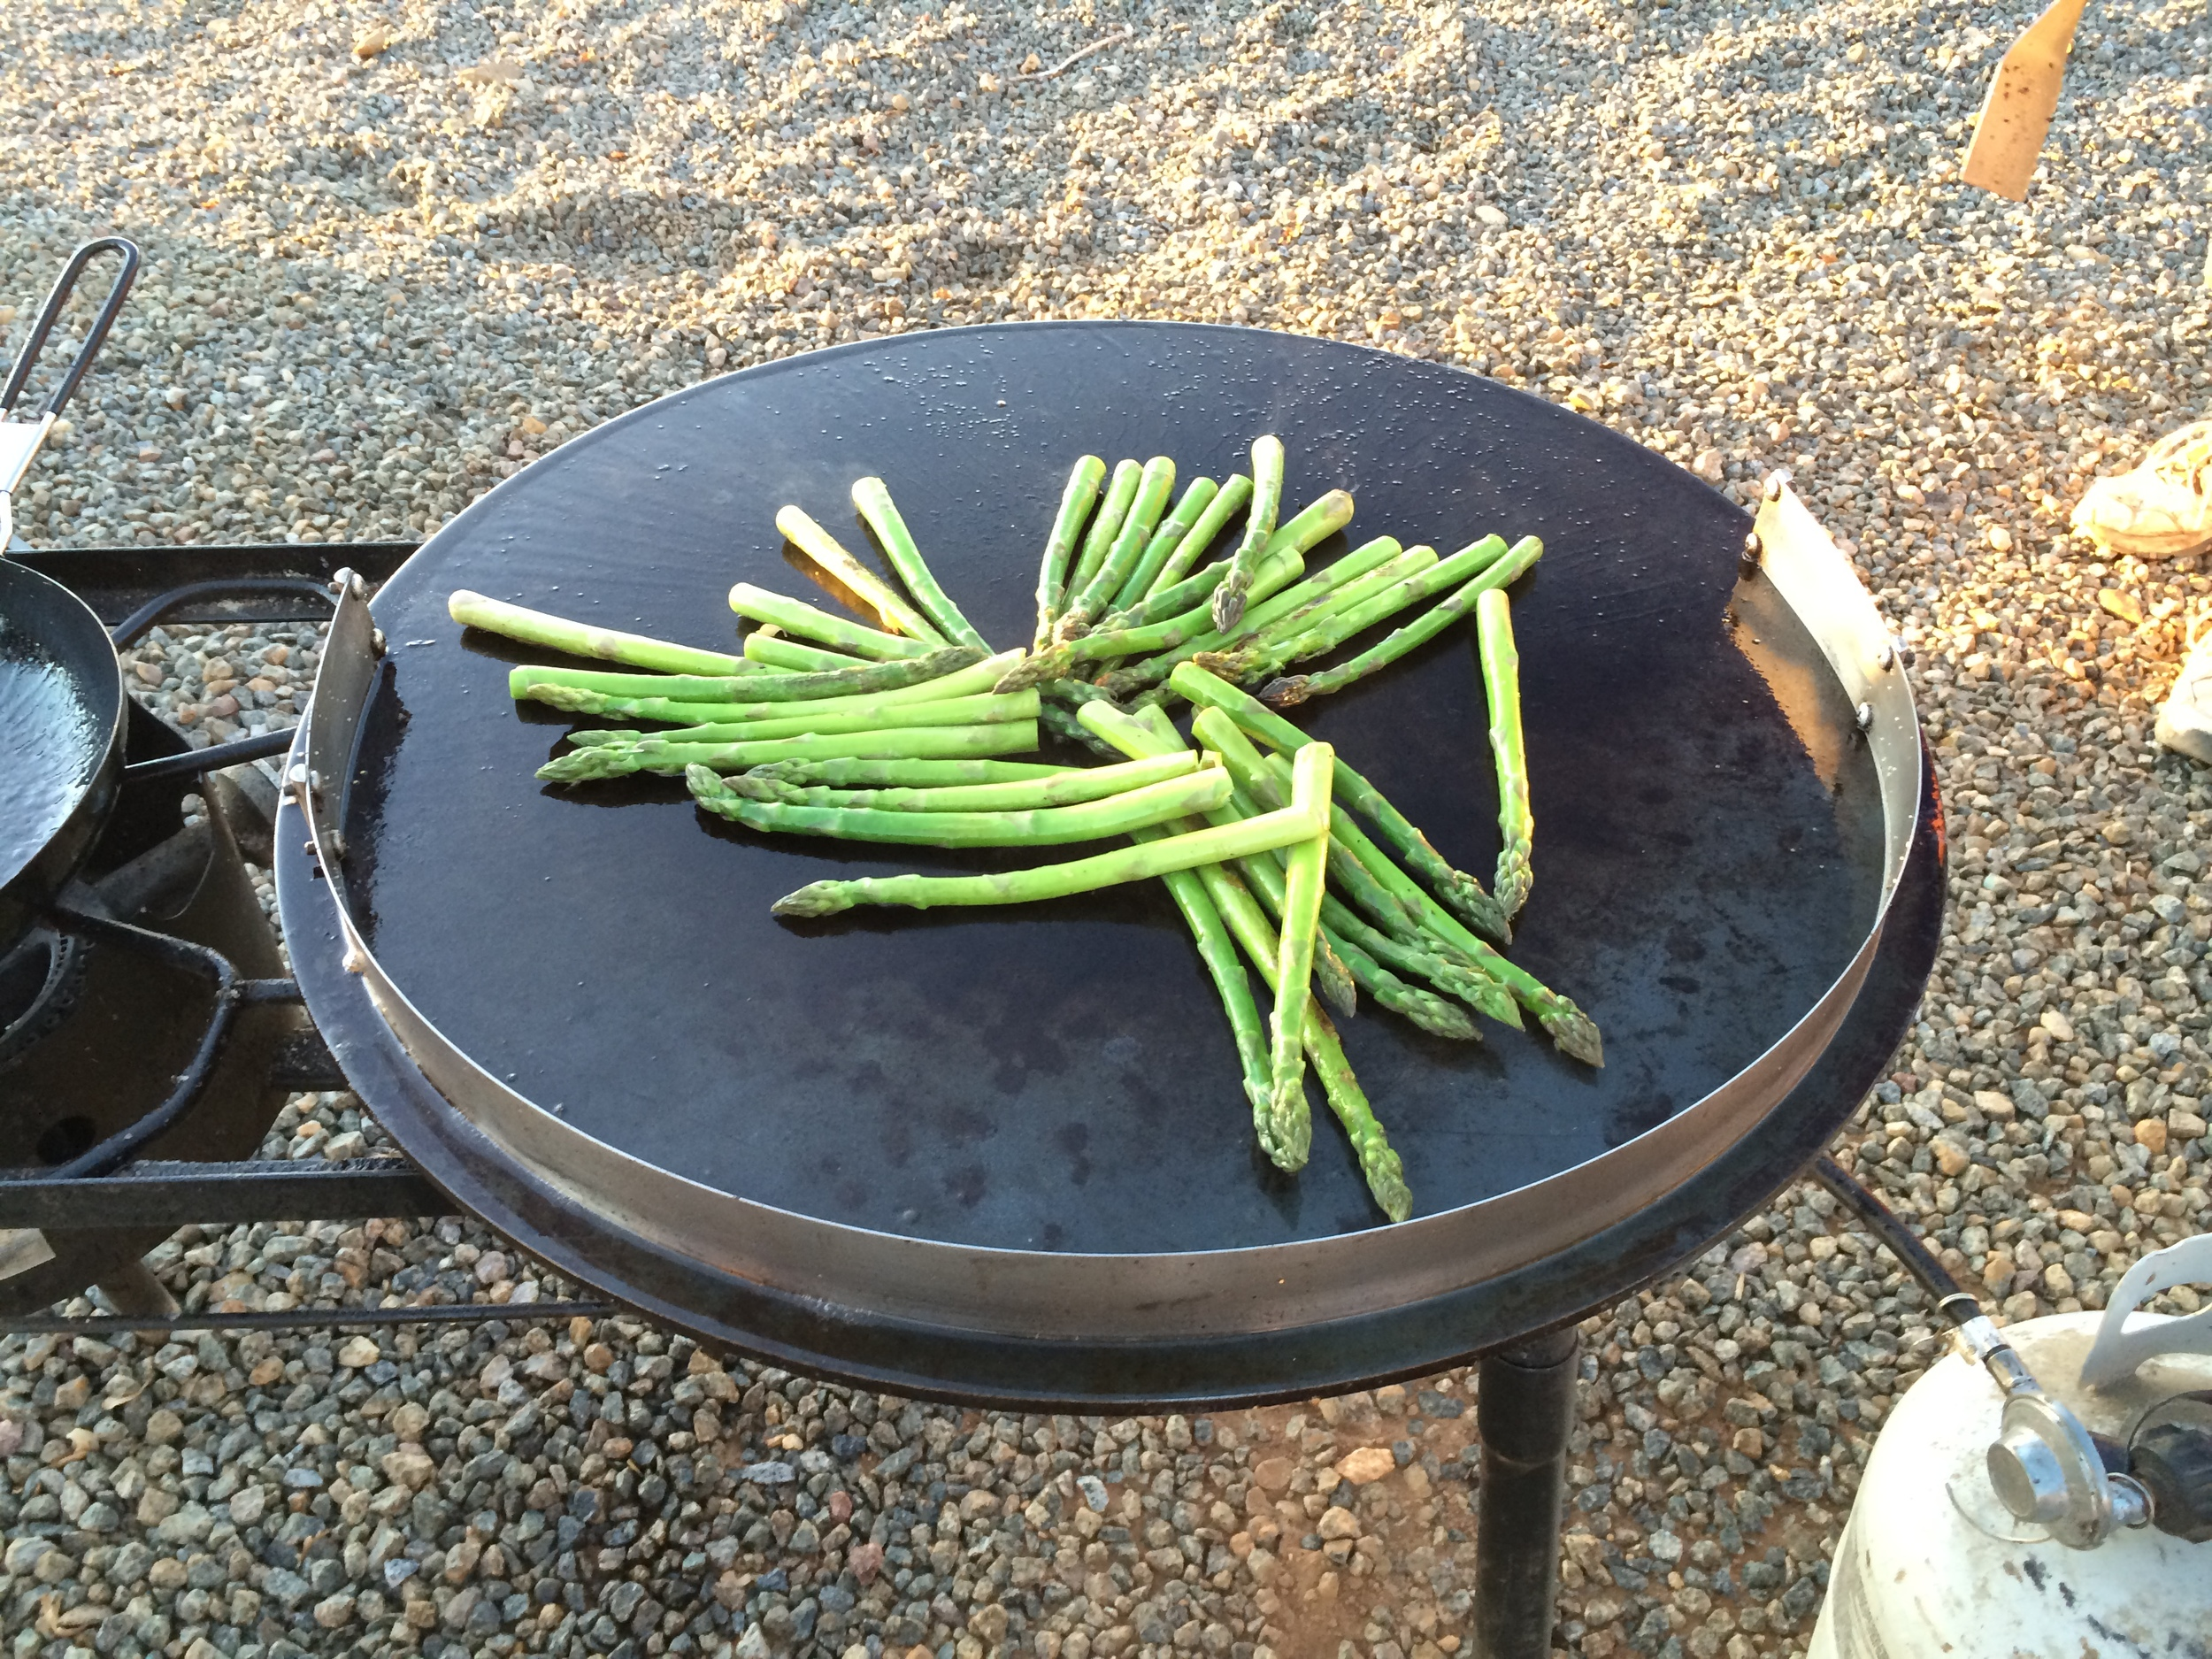 Now We Lay down the Asparagus